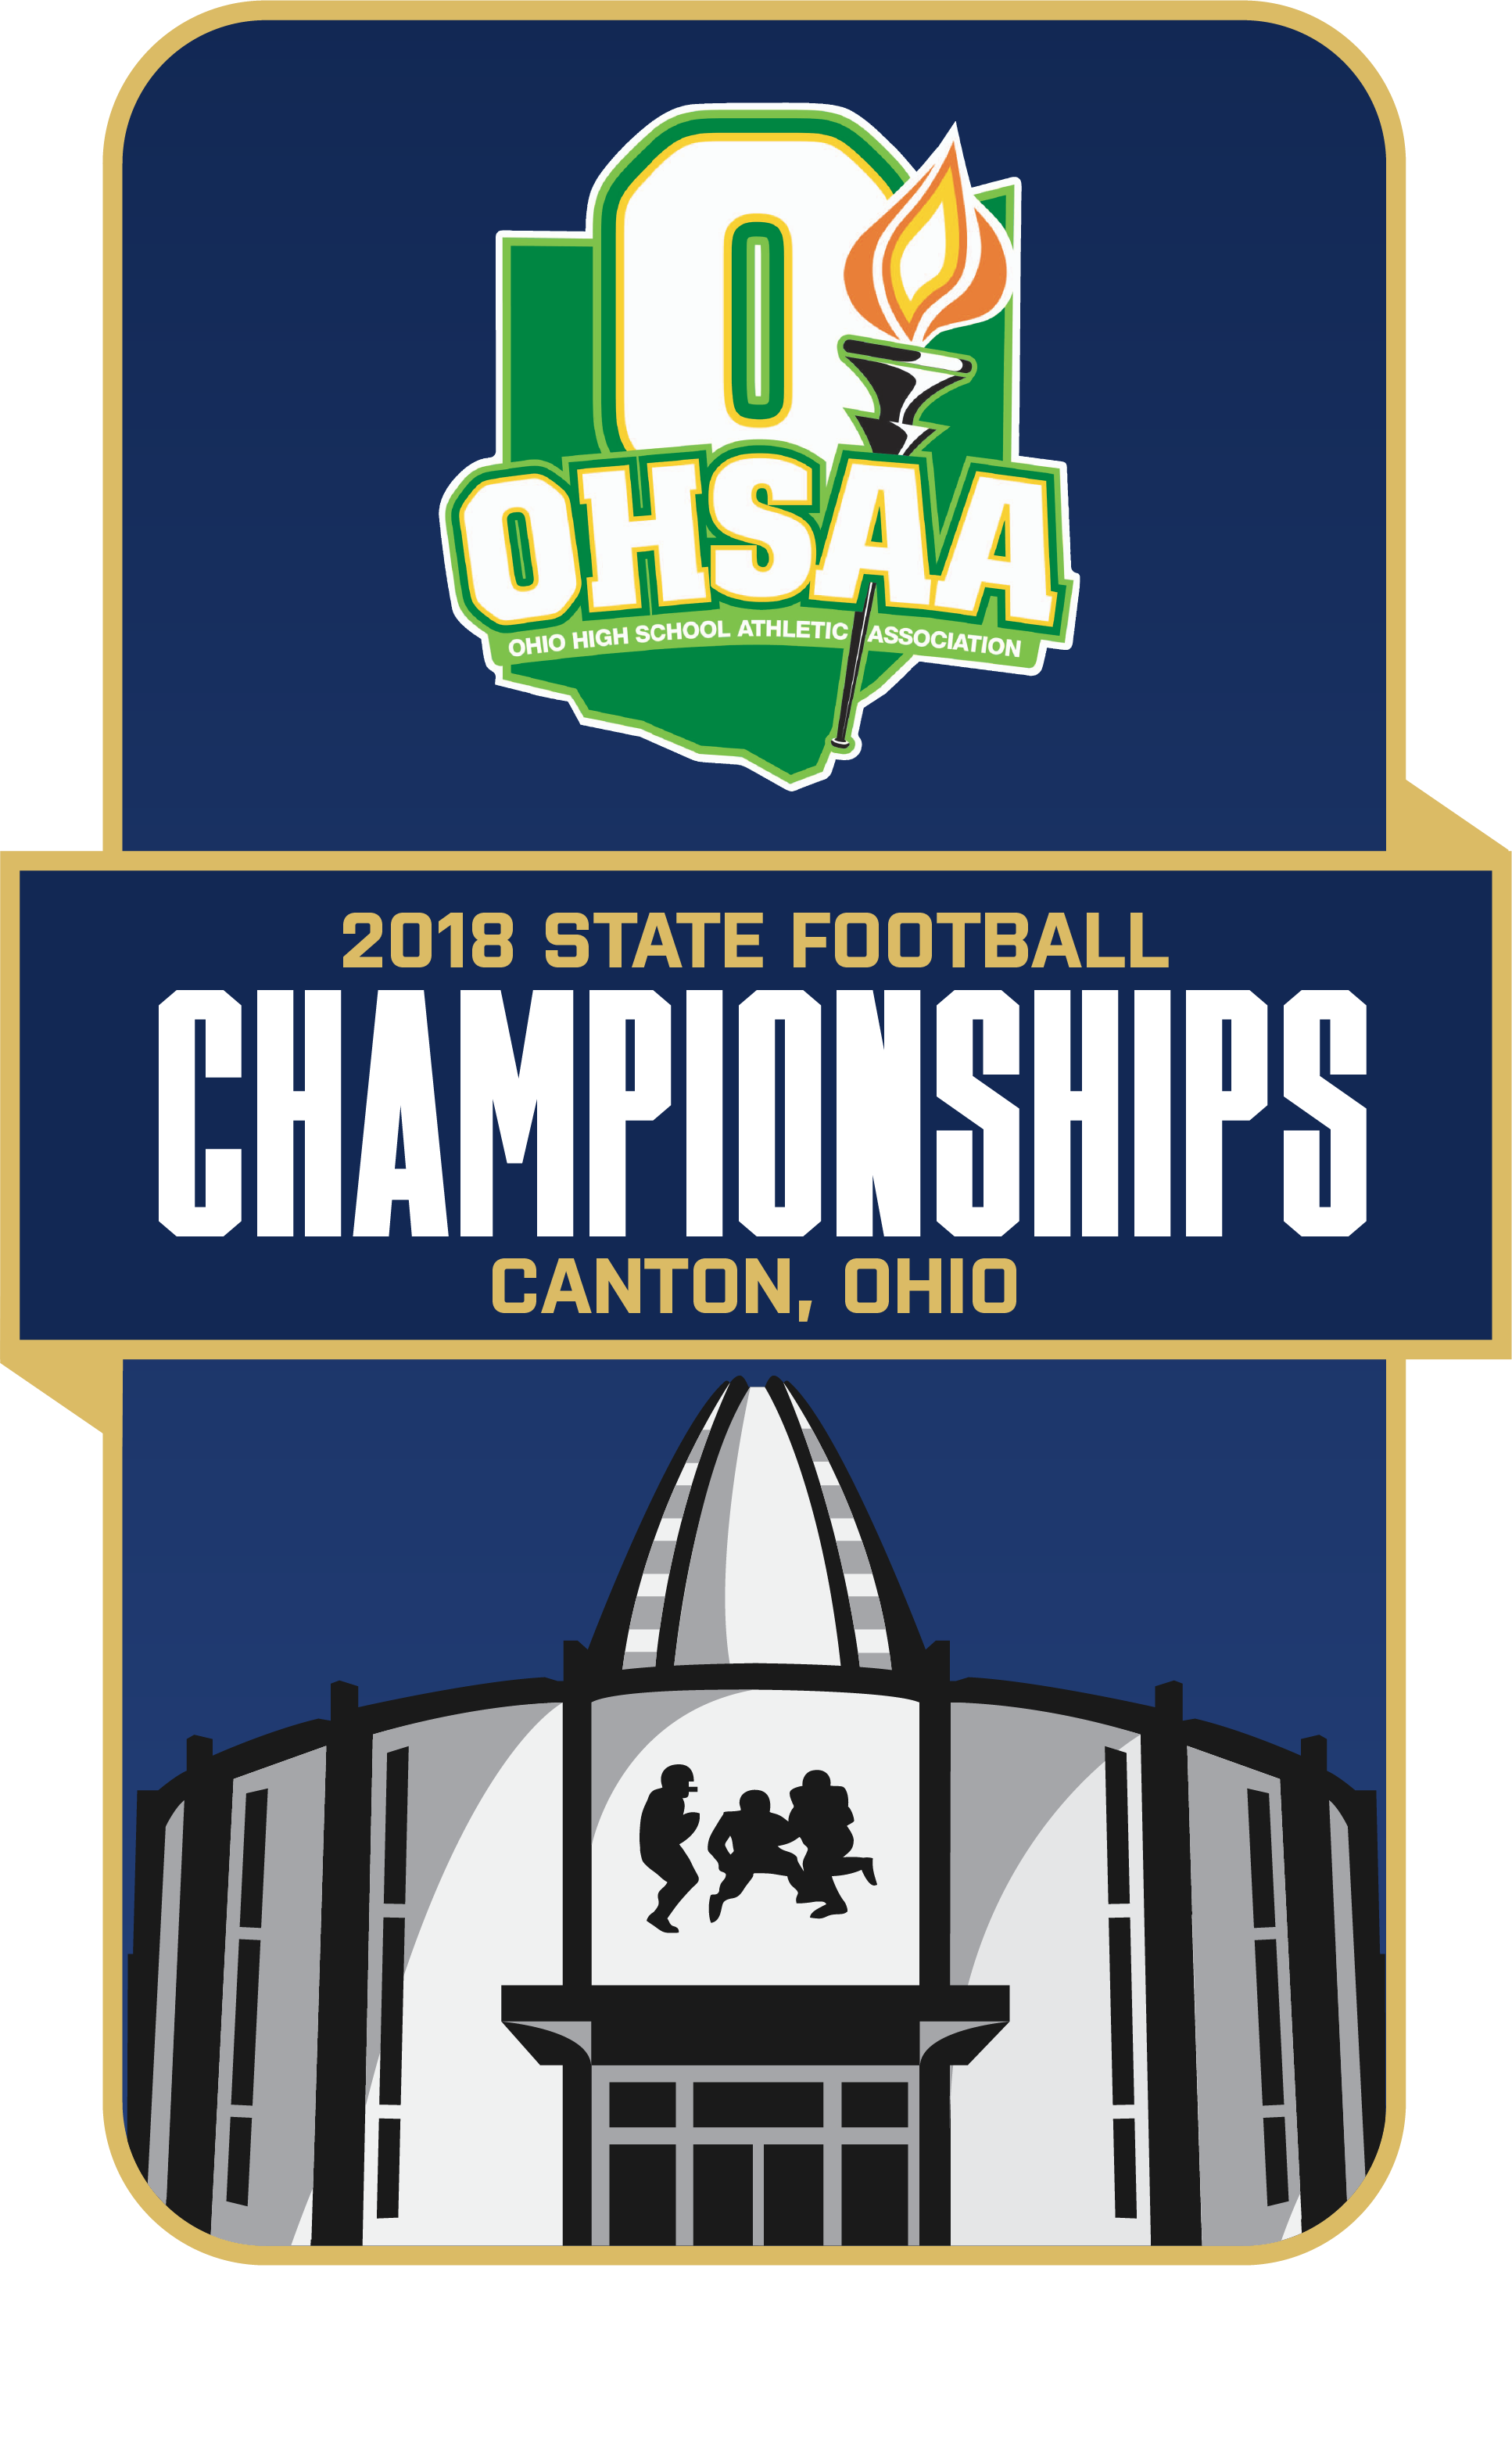 Photo courtesy OHSAA.org